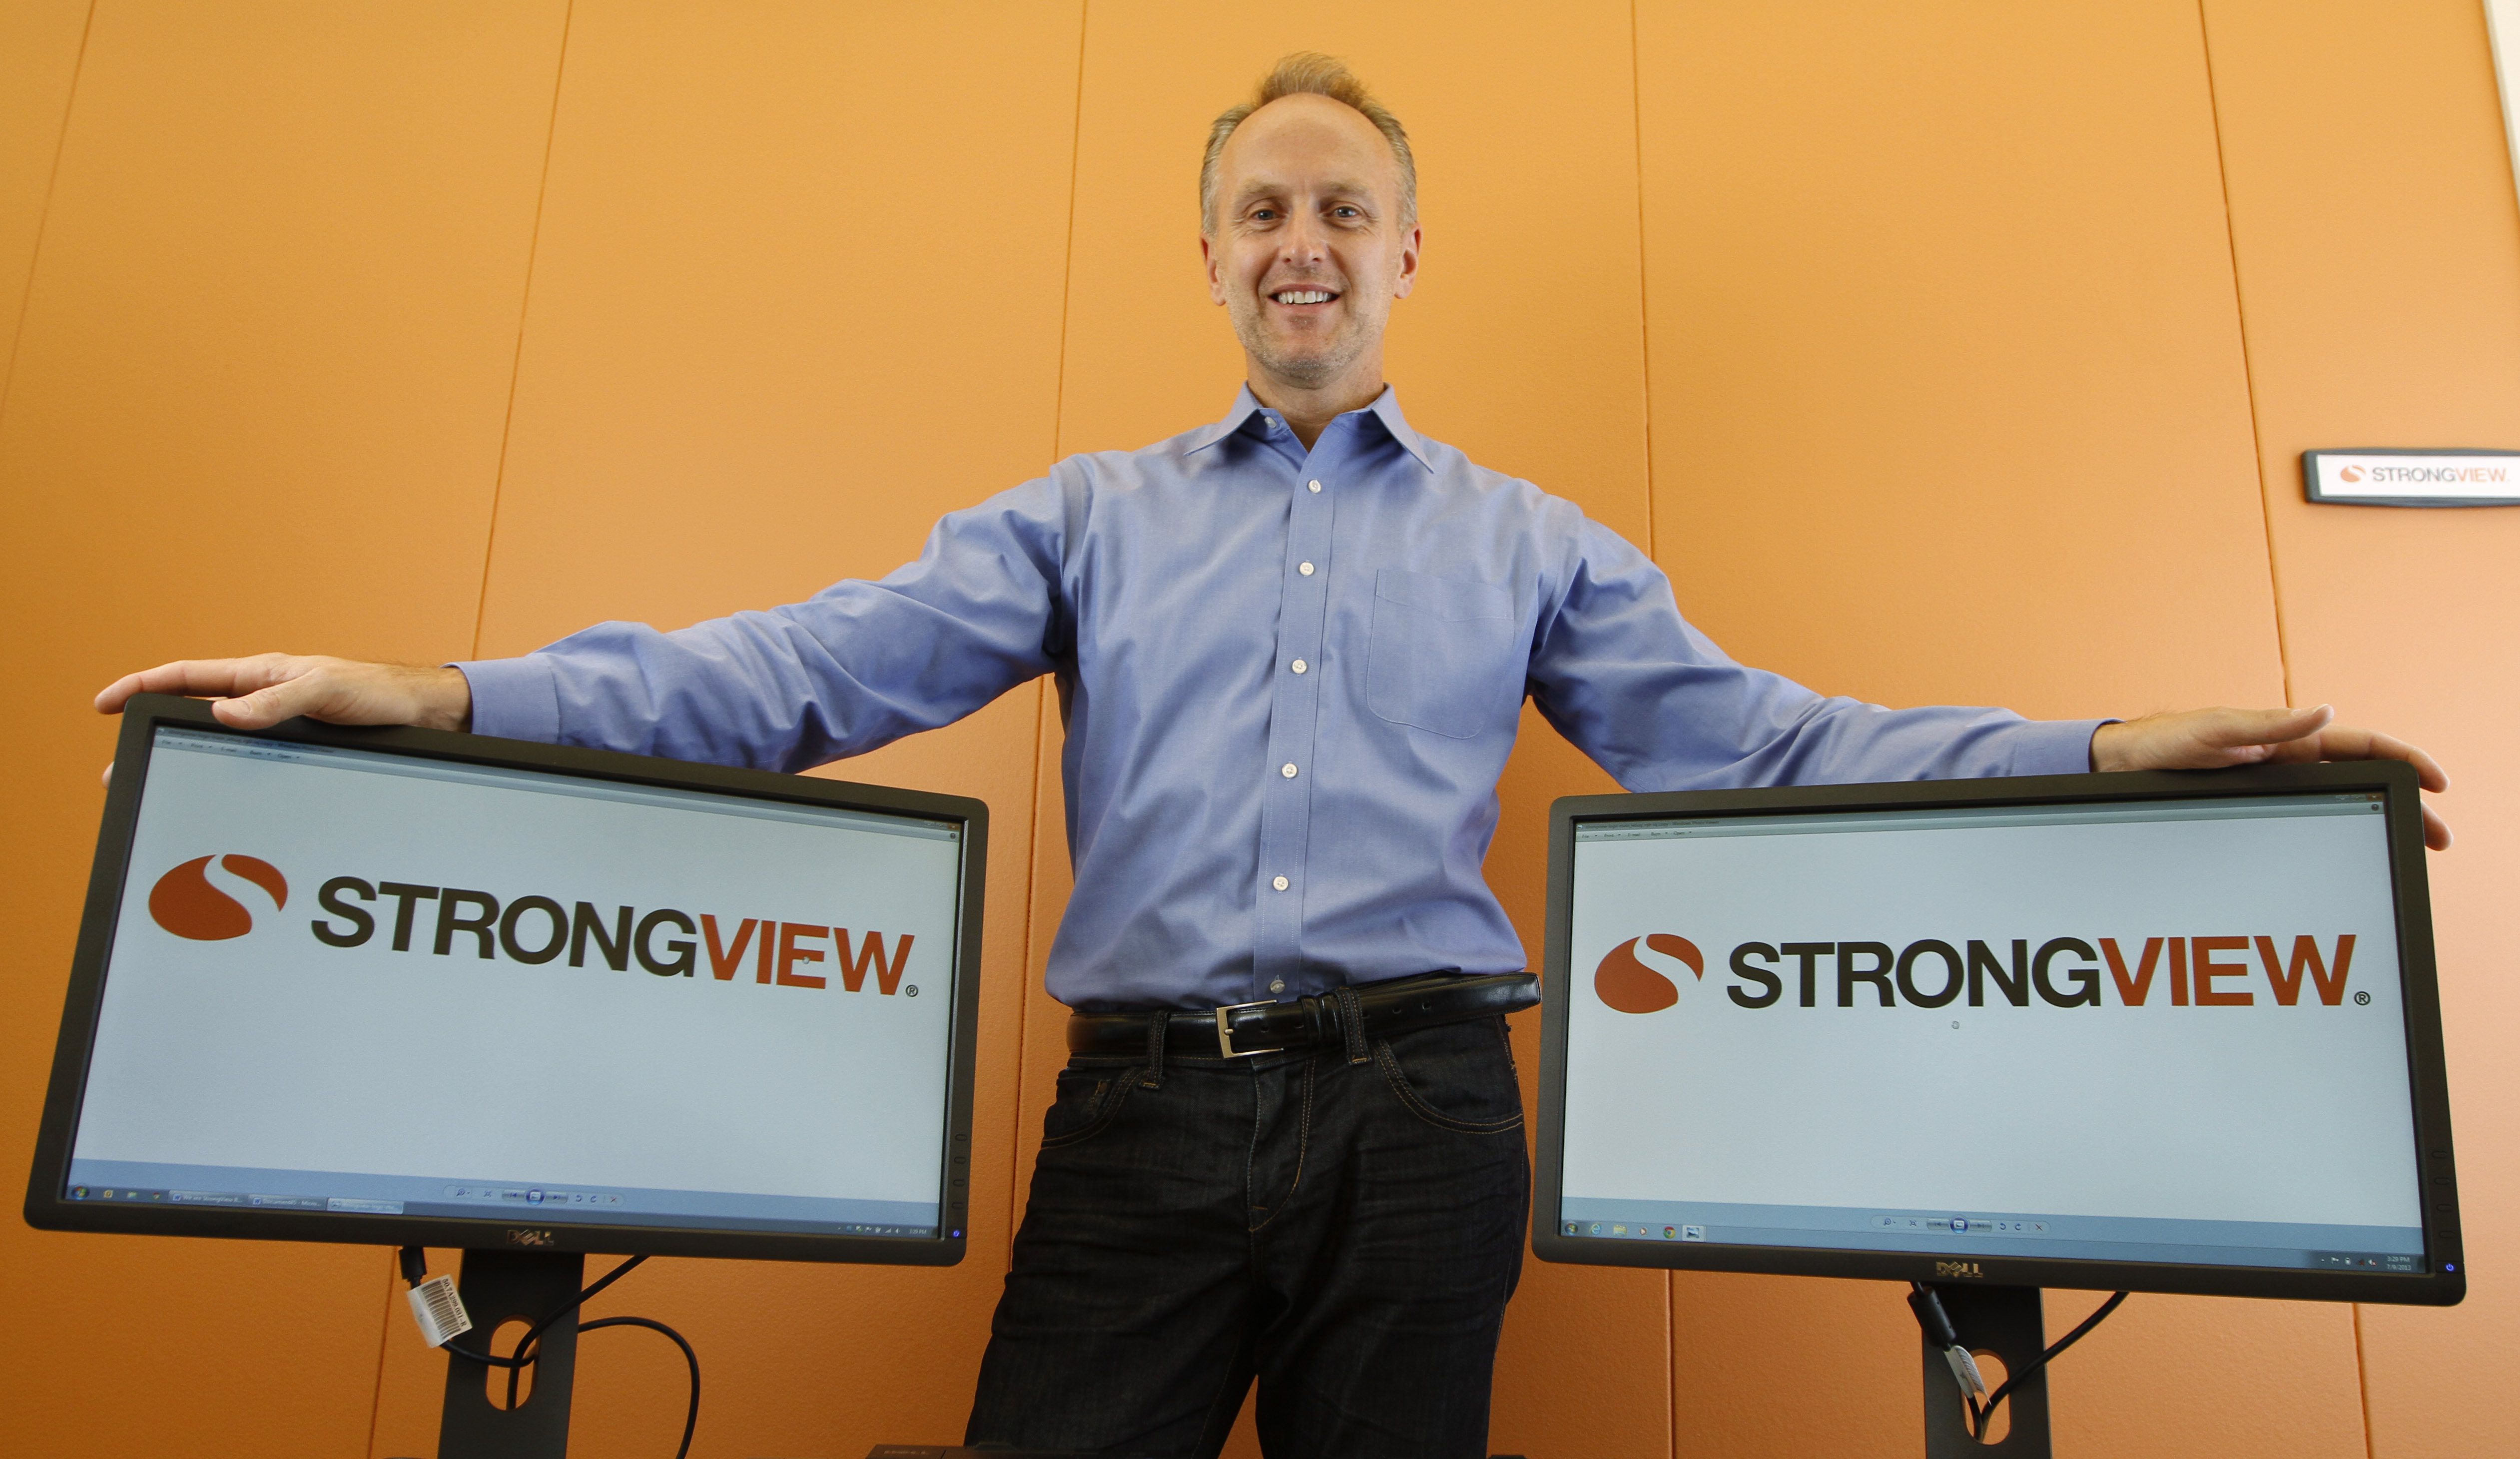 """StrongMail Becomes StrongView! Reflecting the evolving landscape of the digital marketing industry, email and cross-channel marking solutions provider StrongMail announced today that it is rebranding the company and changing its name to StrongView. StrongView CEO, Bill Wagner (pictured here), says the name change """"reflects the transformation the company has made over the past few years, evolving from an enterprise email company to a provider of full cross-channel marketing solutions that give marketers a stronger view of their customers and how to successfully engage them."""" The StrongView cross-channel marketing platform gives consumer marketers the tools to orchestrate powerful digital marketing programs that integrate email, mobile, social, web and display advertising features in large-scale campaigns. (Photo: Business Wire)"""